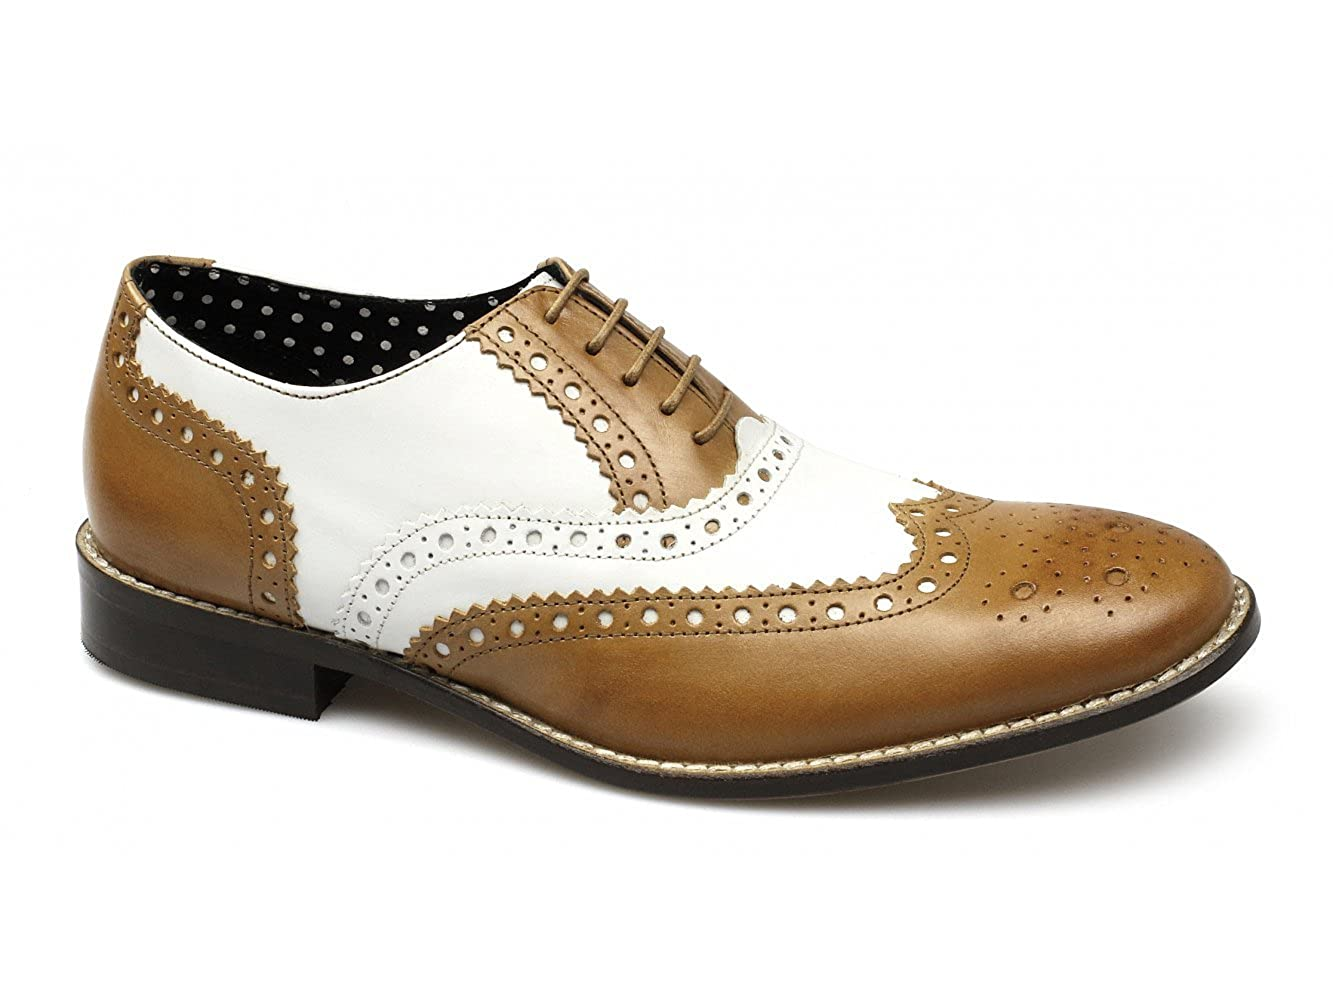 d68aee0a9d478 London Brogues Gatsby Mens Leather Brogue Shoes